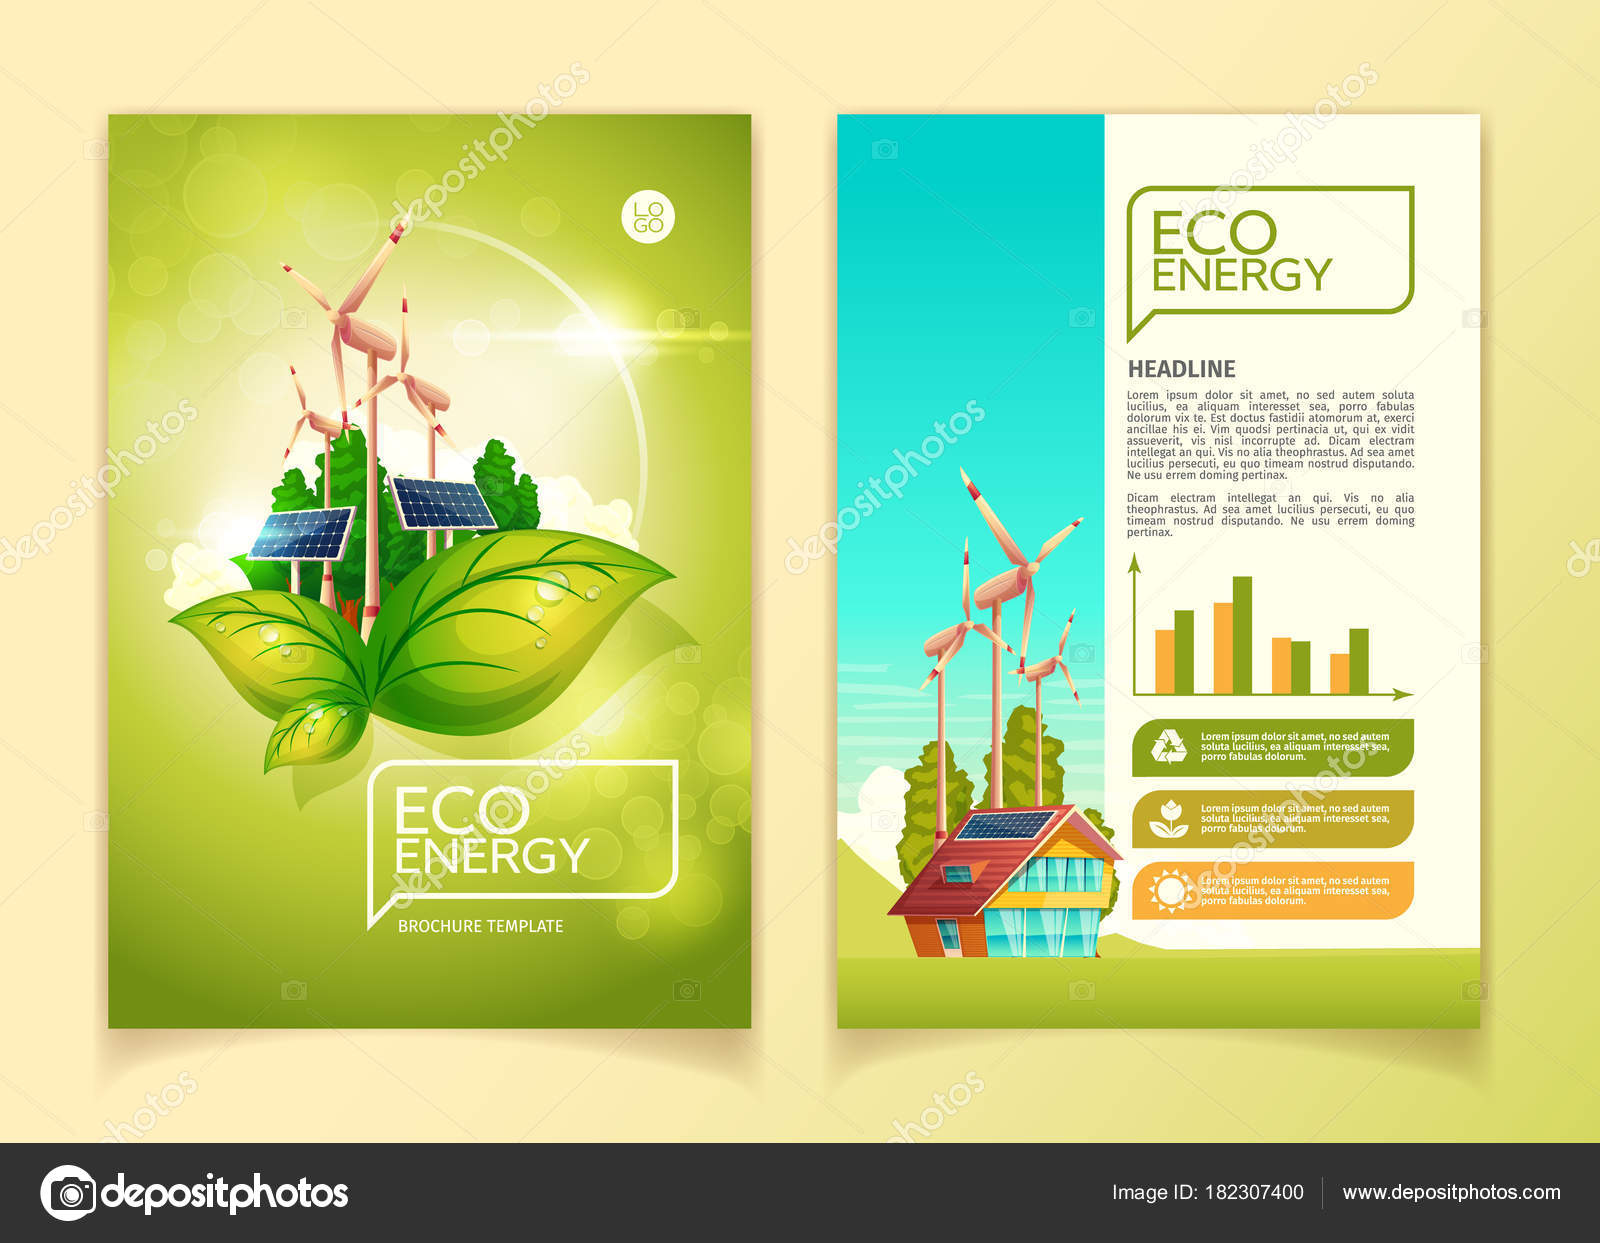 eco energy concept brochure template vector illustration for green nature environment conservation and natural resources flat booklet design template of